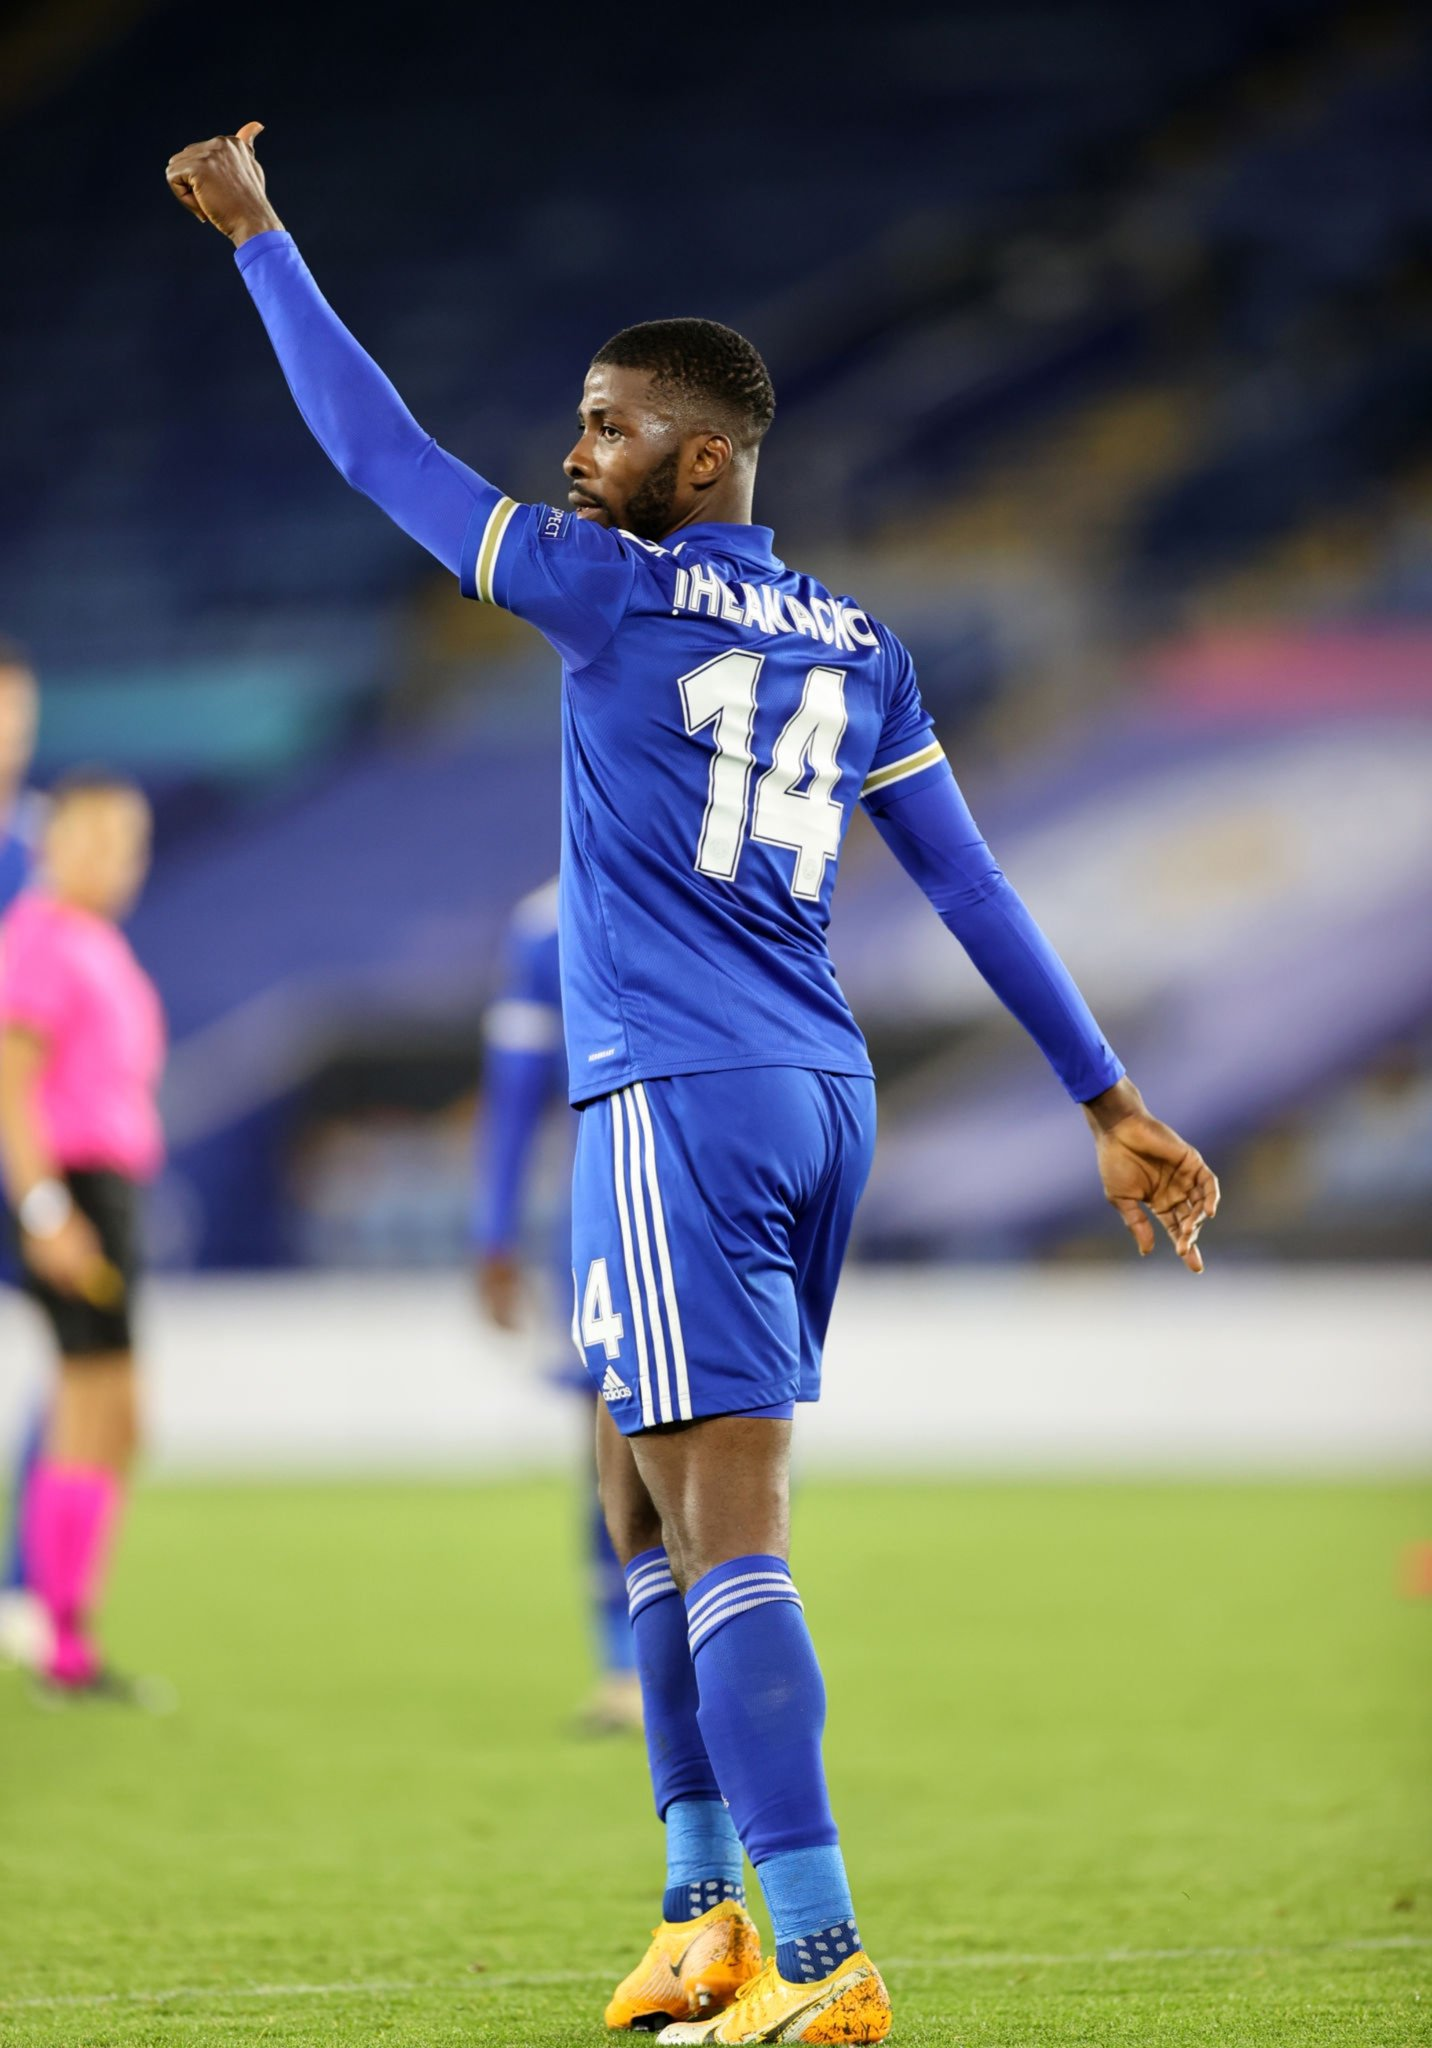 'There's More To Come'- Iheanacho Targets More Goals For Leicester City